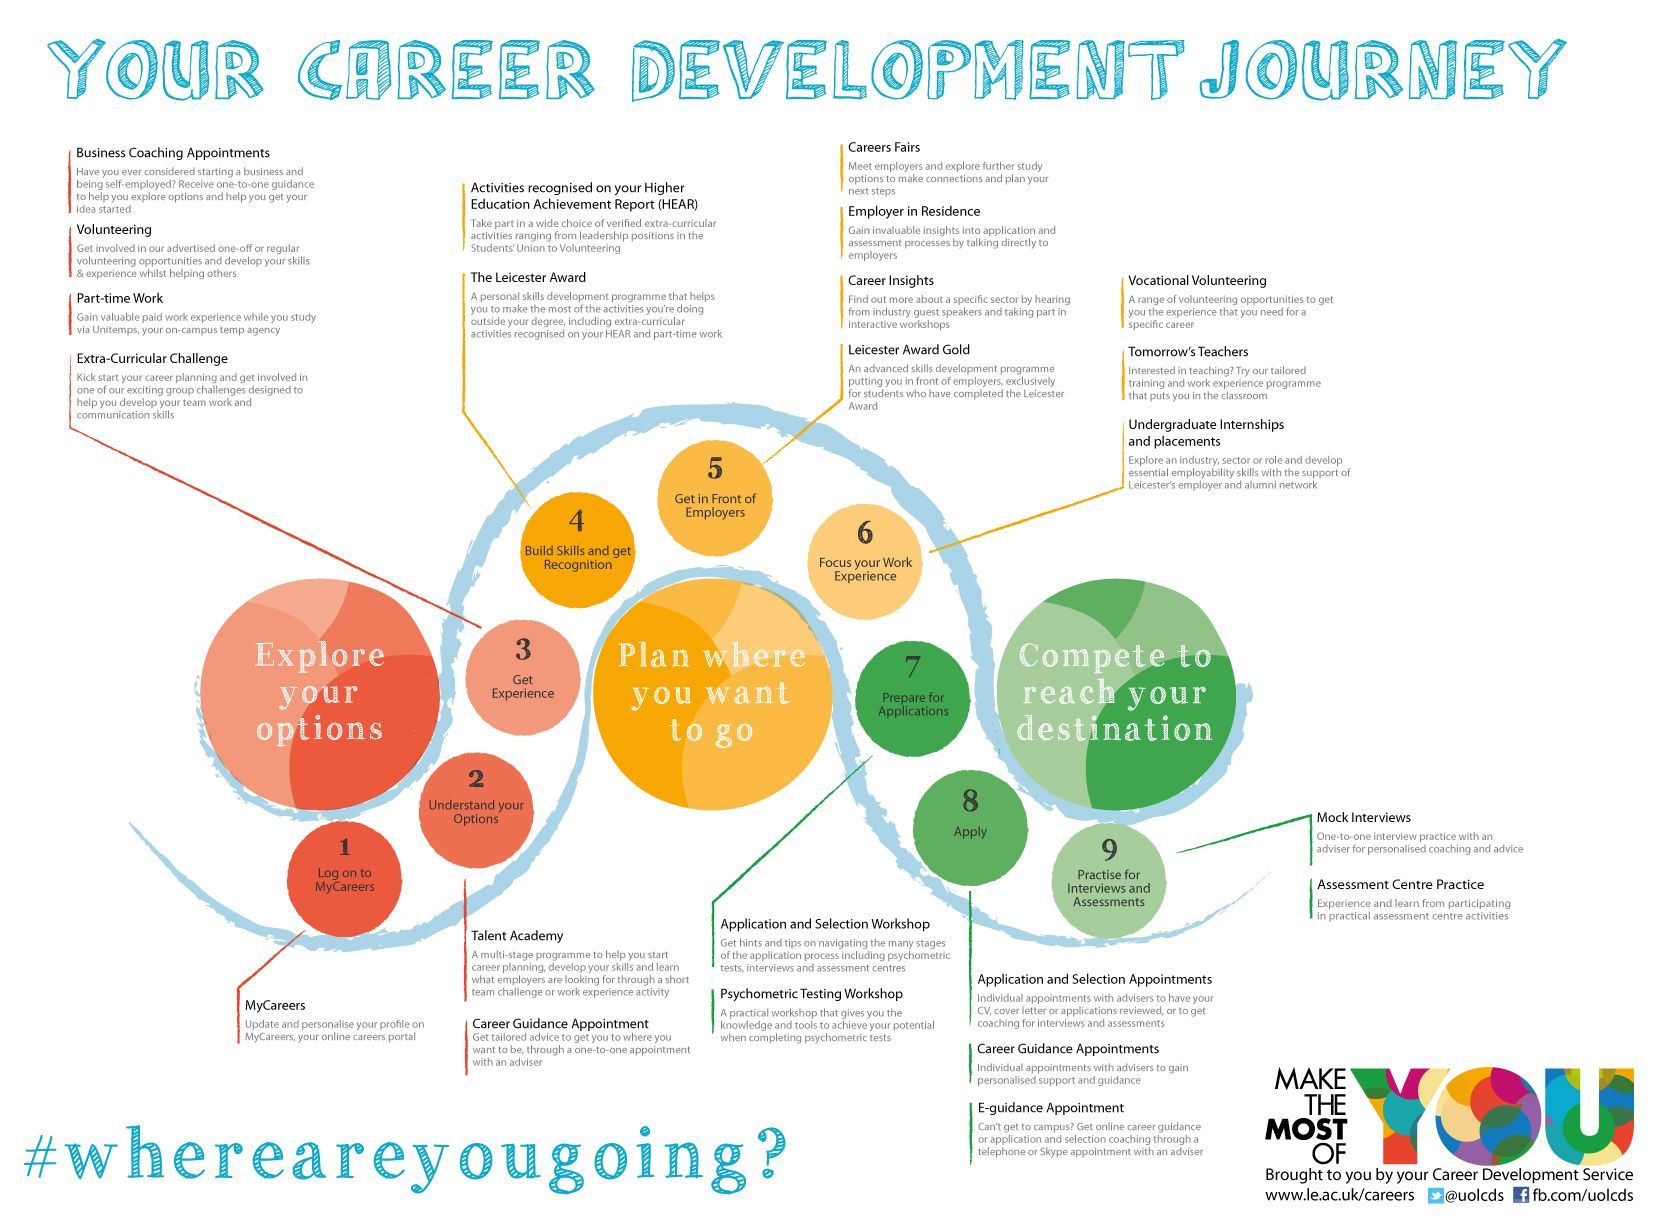 Career Development Journey Map With Images